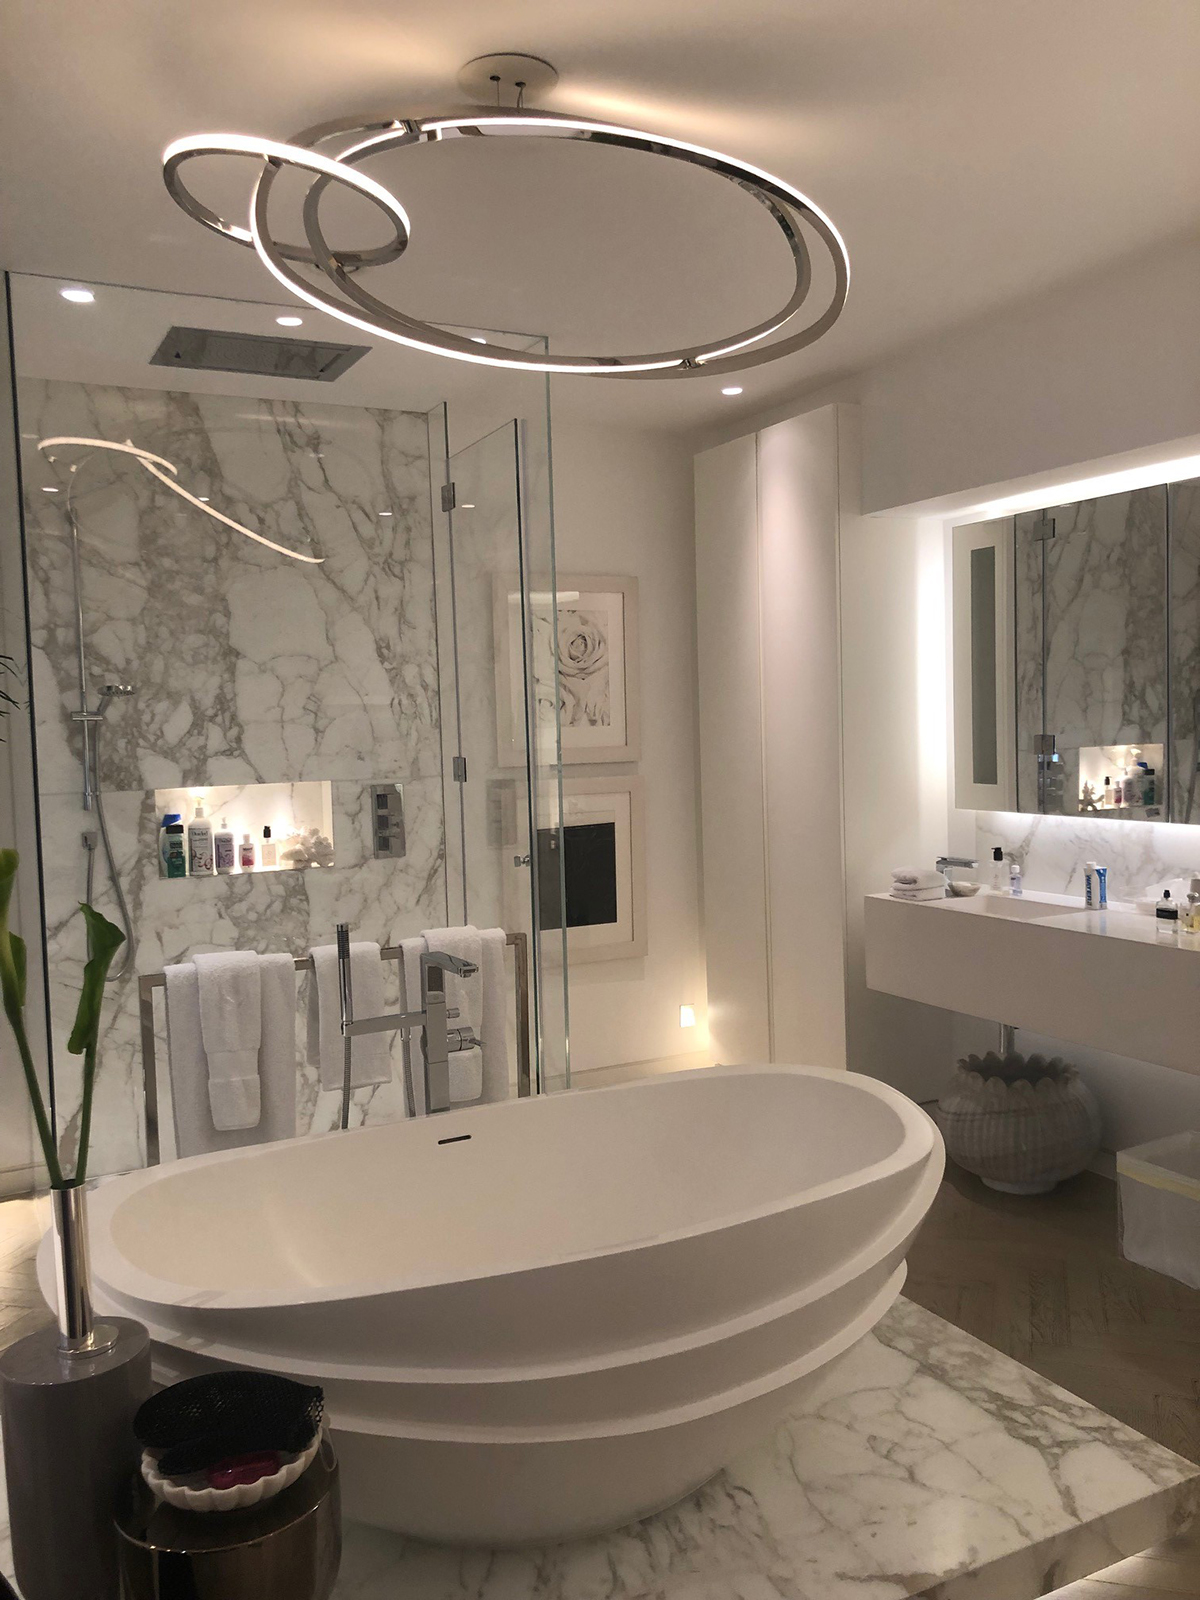 Kelly Hoppens' master bedroom ensuite complete with a sculptural bath tub, huge statement pendant light and his and hers basins. The house tour was part of the Great Indoors podcast with Sophie Robinson and Kate Watson-Smyth. #sophierobinson #kellyhoppen #bathroom #bathroomlight